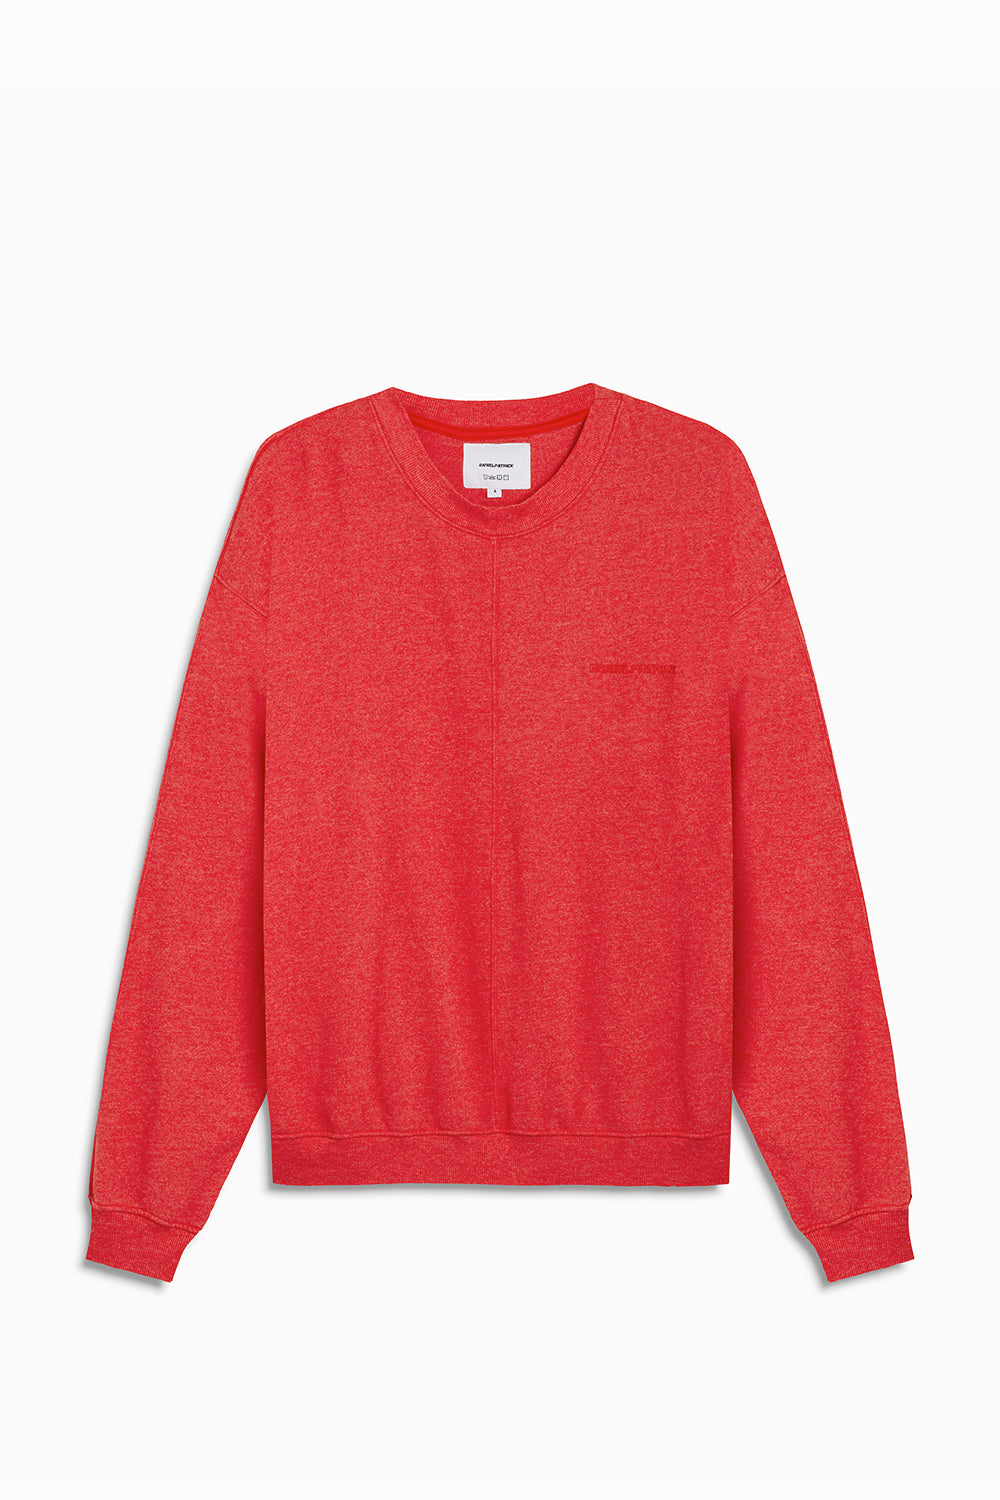 loop terry crewneck sweatshirt / red heather